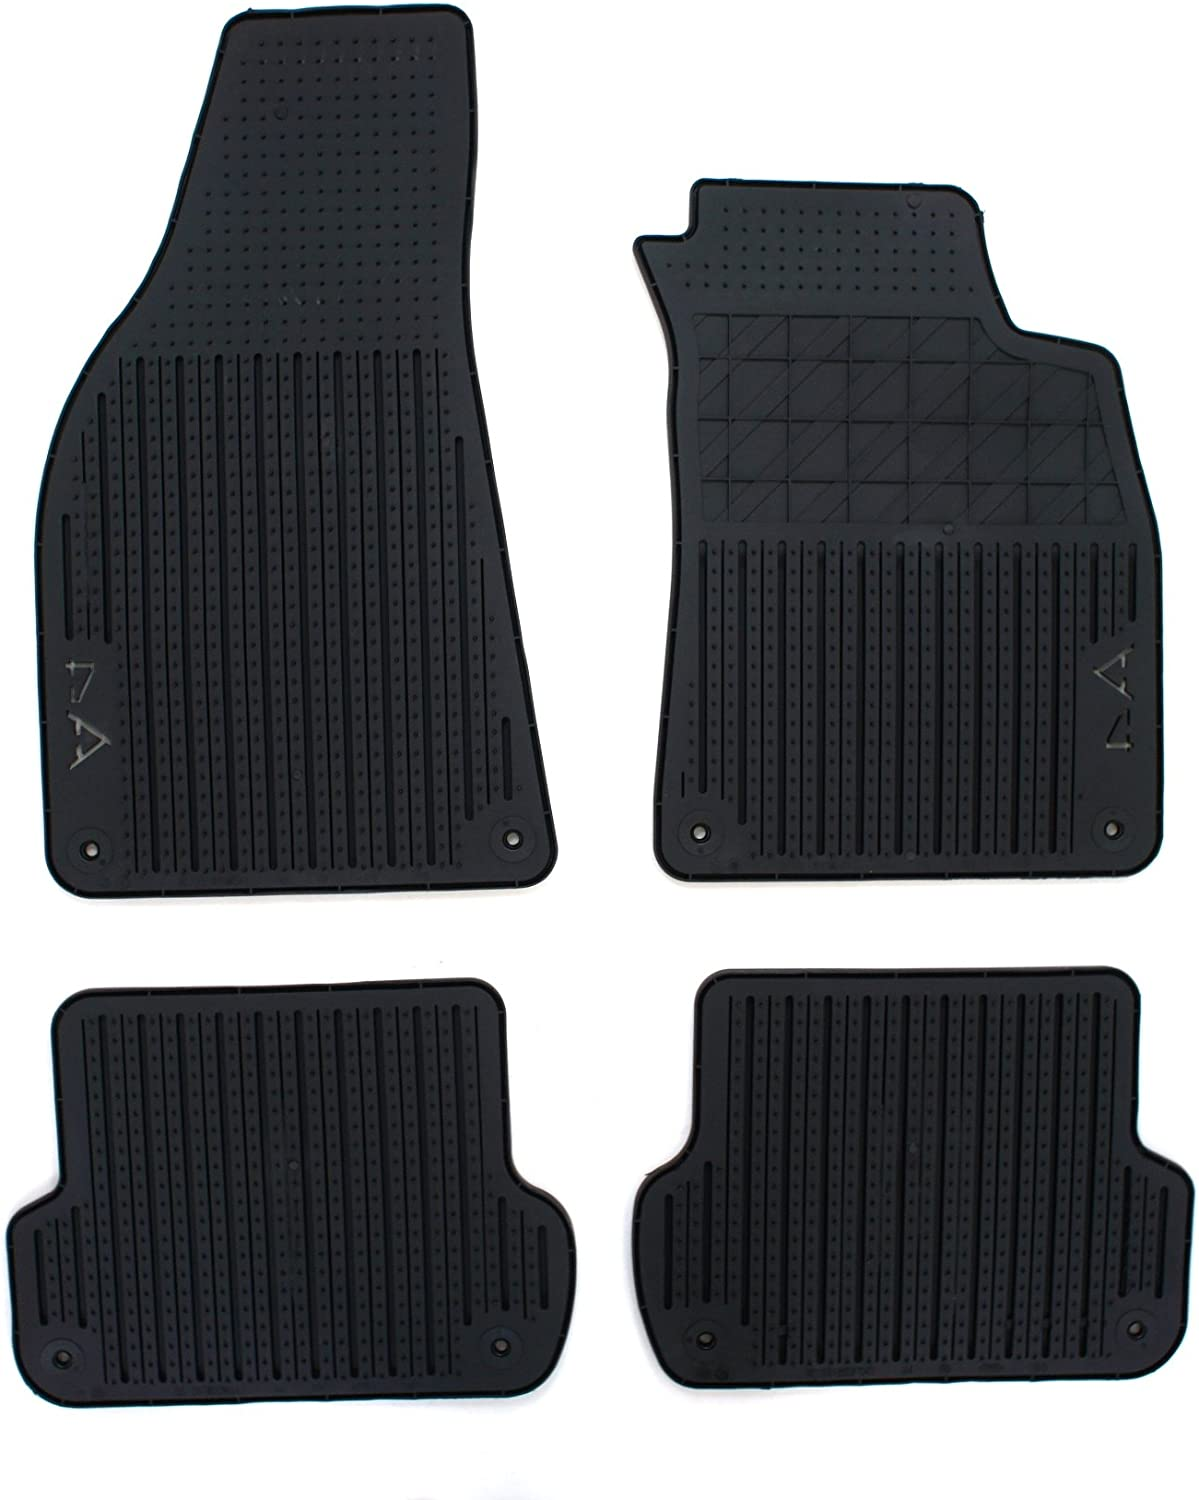 Tailored Drivers Car Floor Mat in Black Single B9 Audi A4 2015-2018